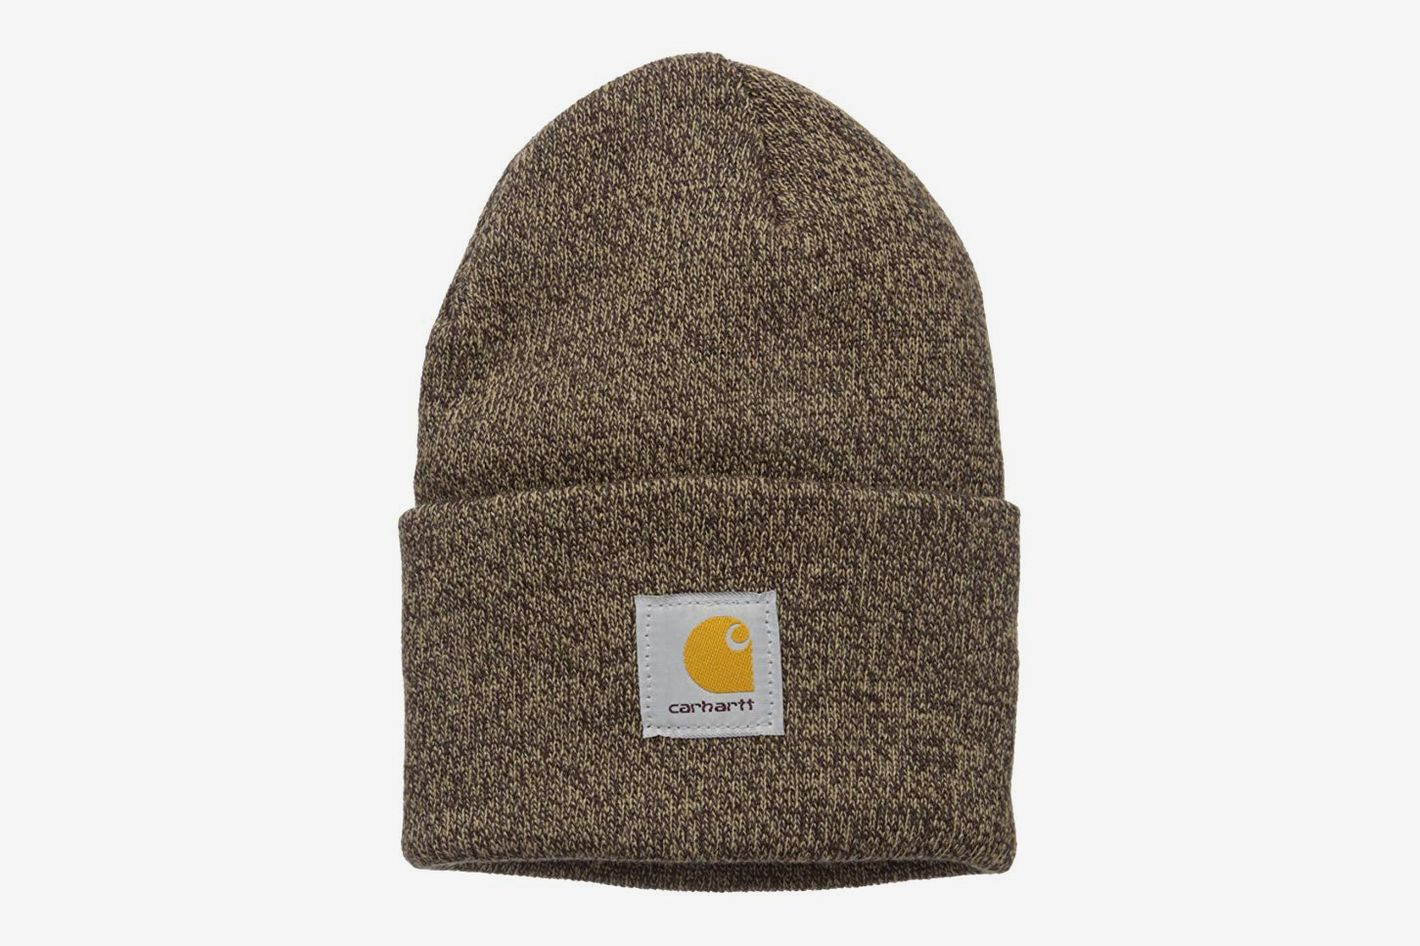 10e54a5ea9d Carhartt Beanies Are Everywhere. Here s Why.